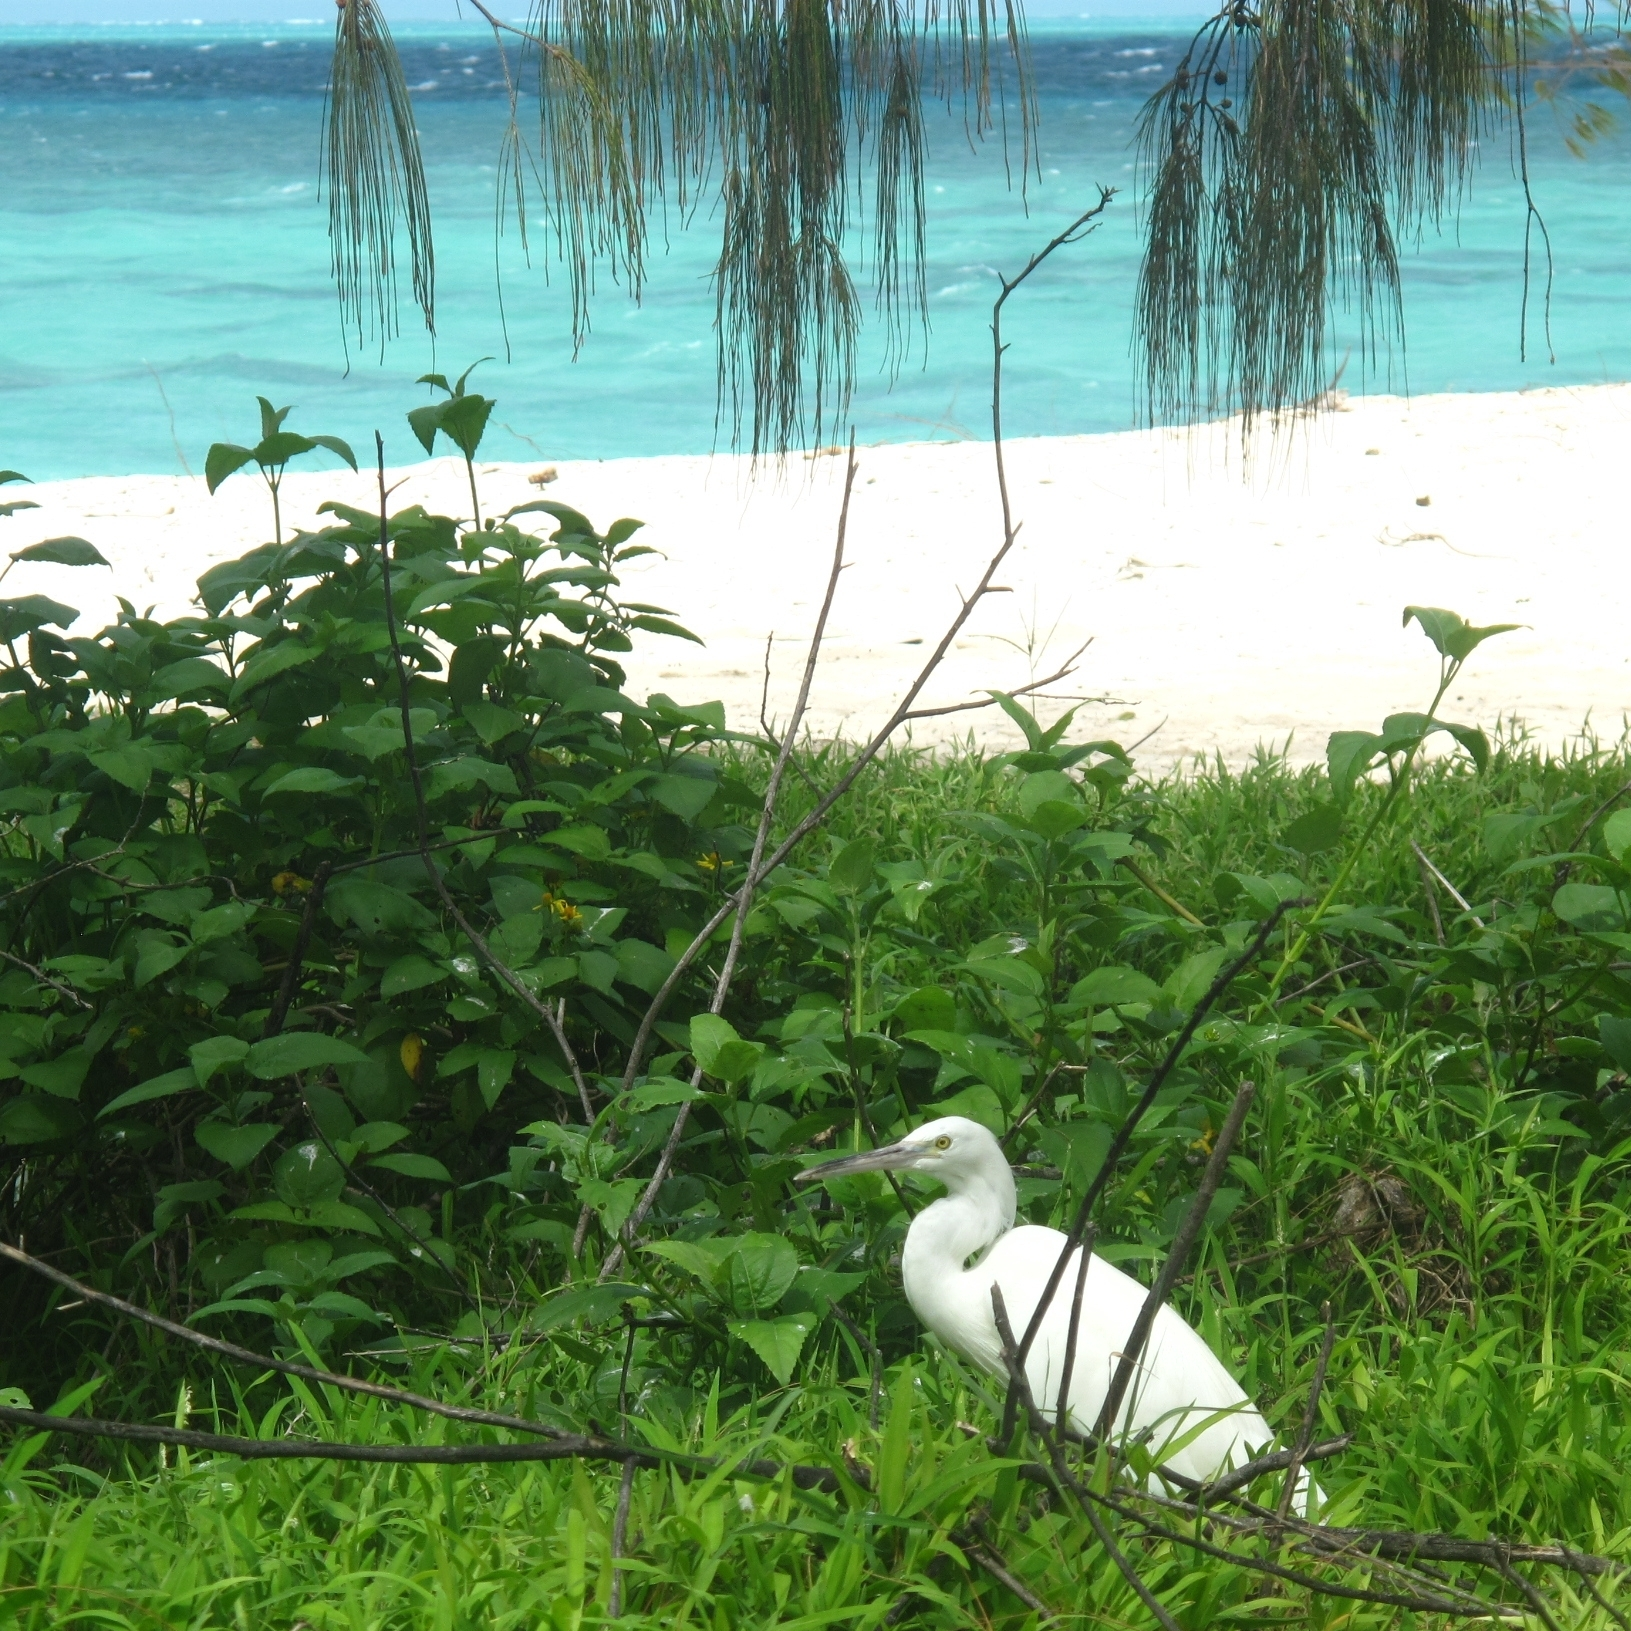 The name Heron Island is deceptive -- the great white-plumed birds on are actually reef egrets.